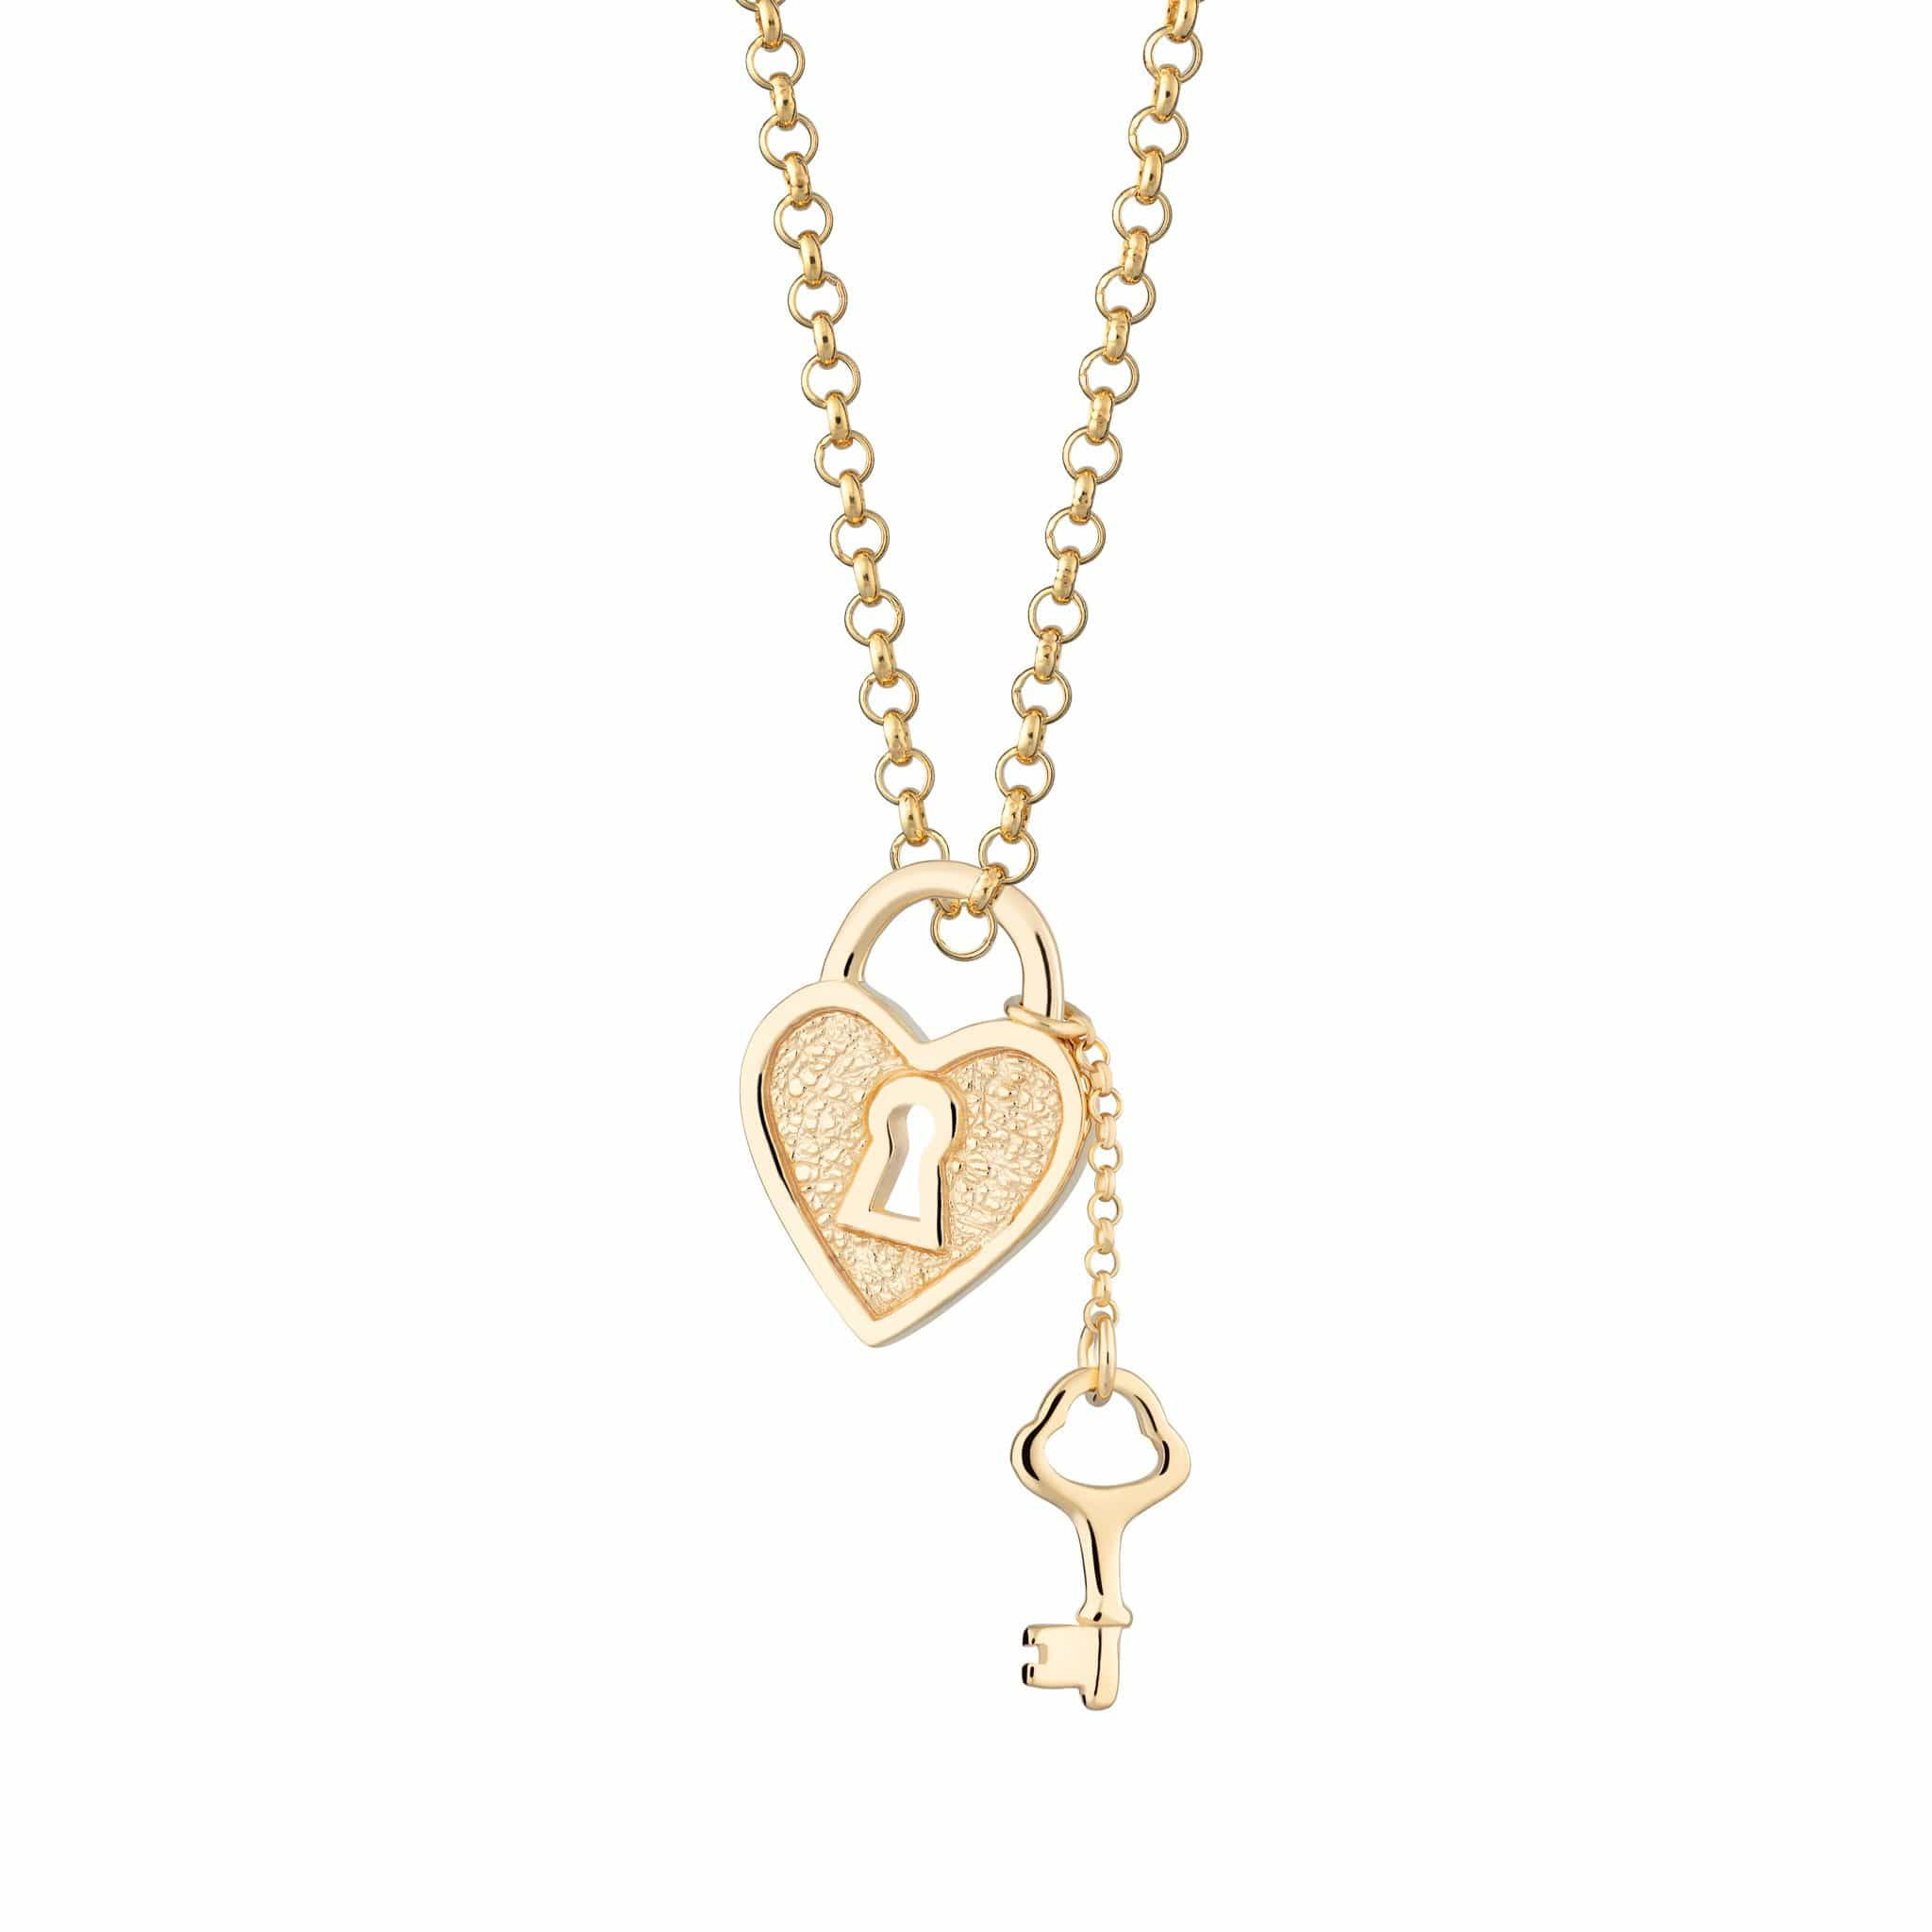 Personalised Gold Plated Heart Shaped Padlock and Key Necklace - Lily Charmed